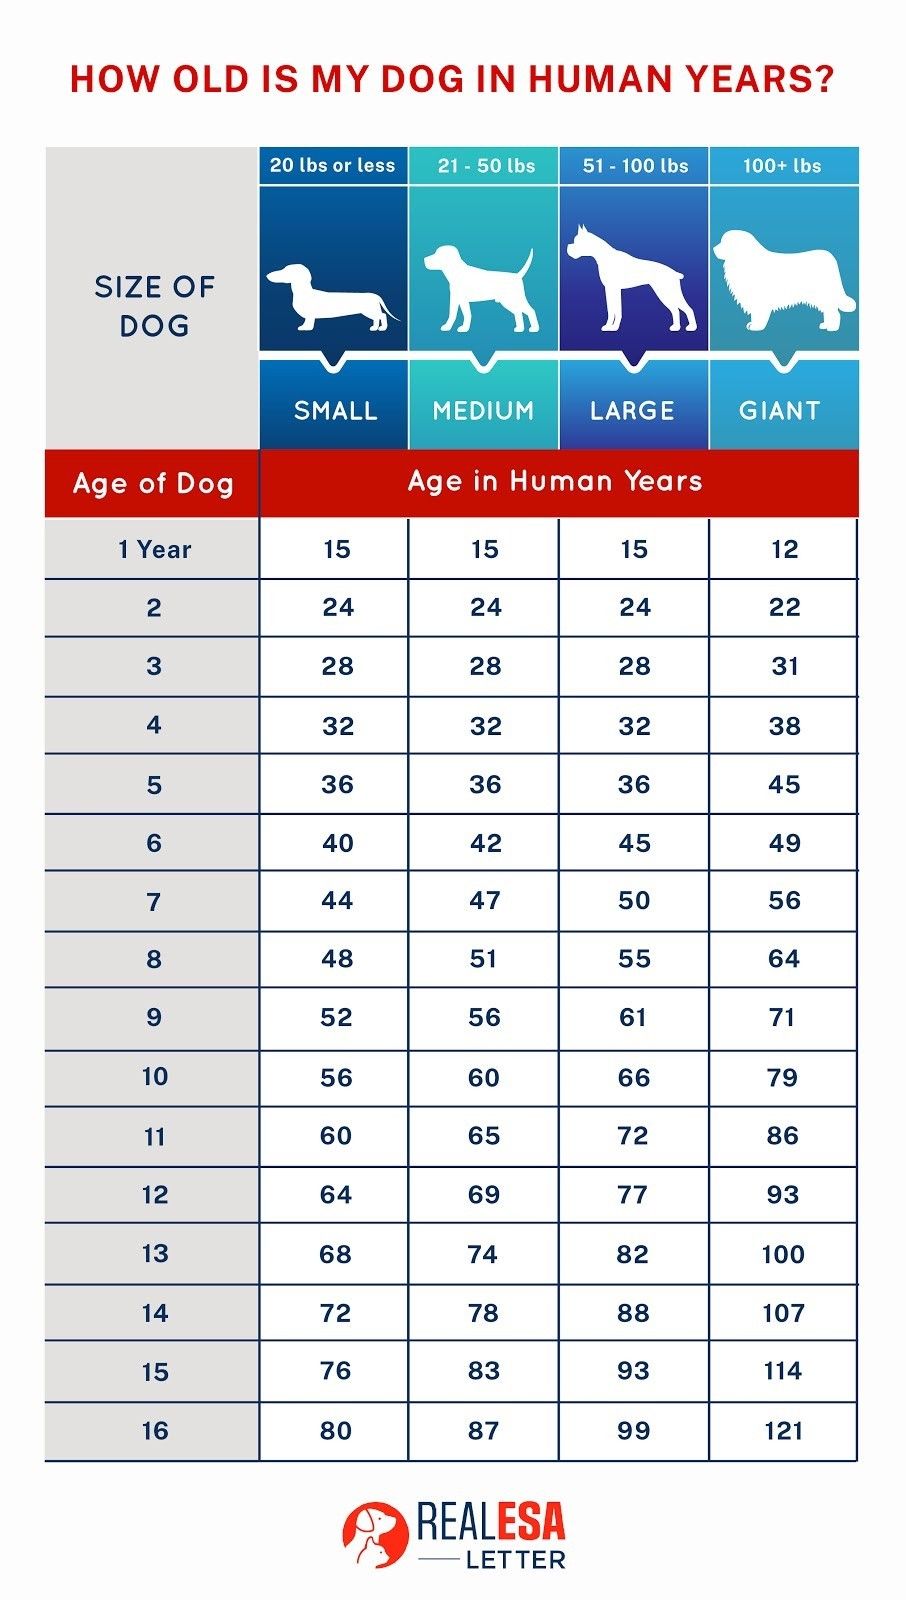 How long do dogs live in human years